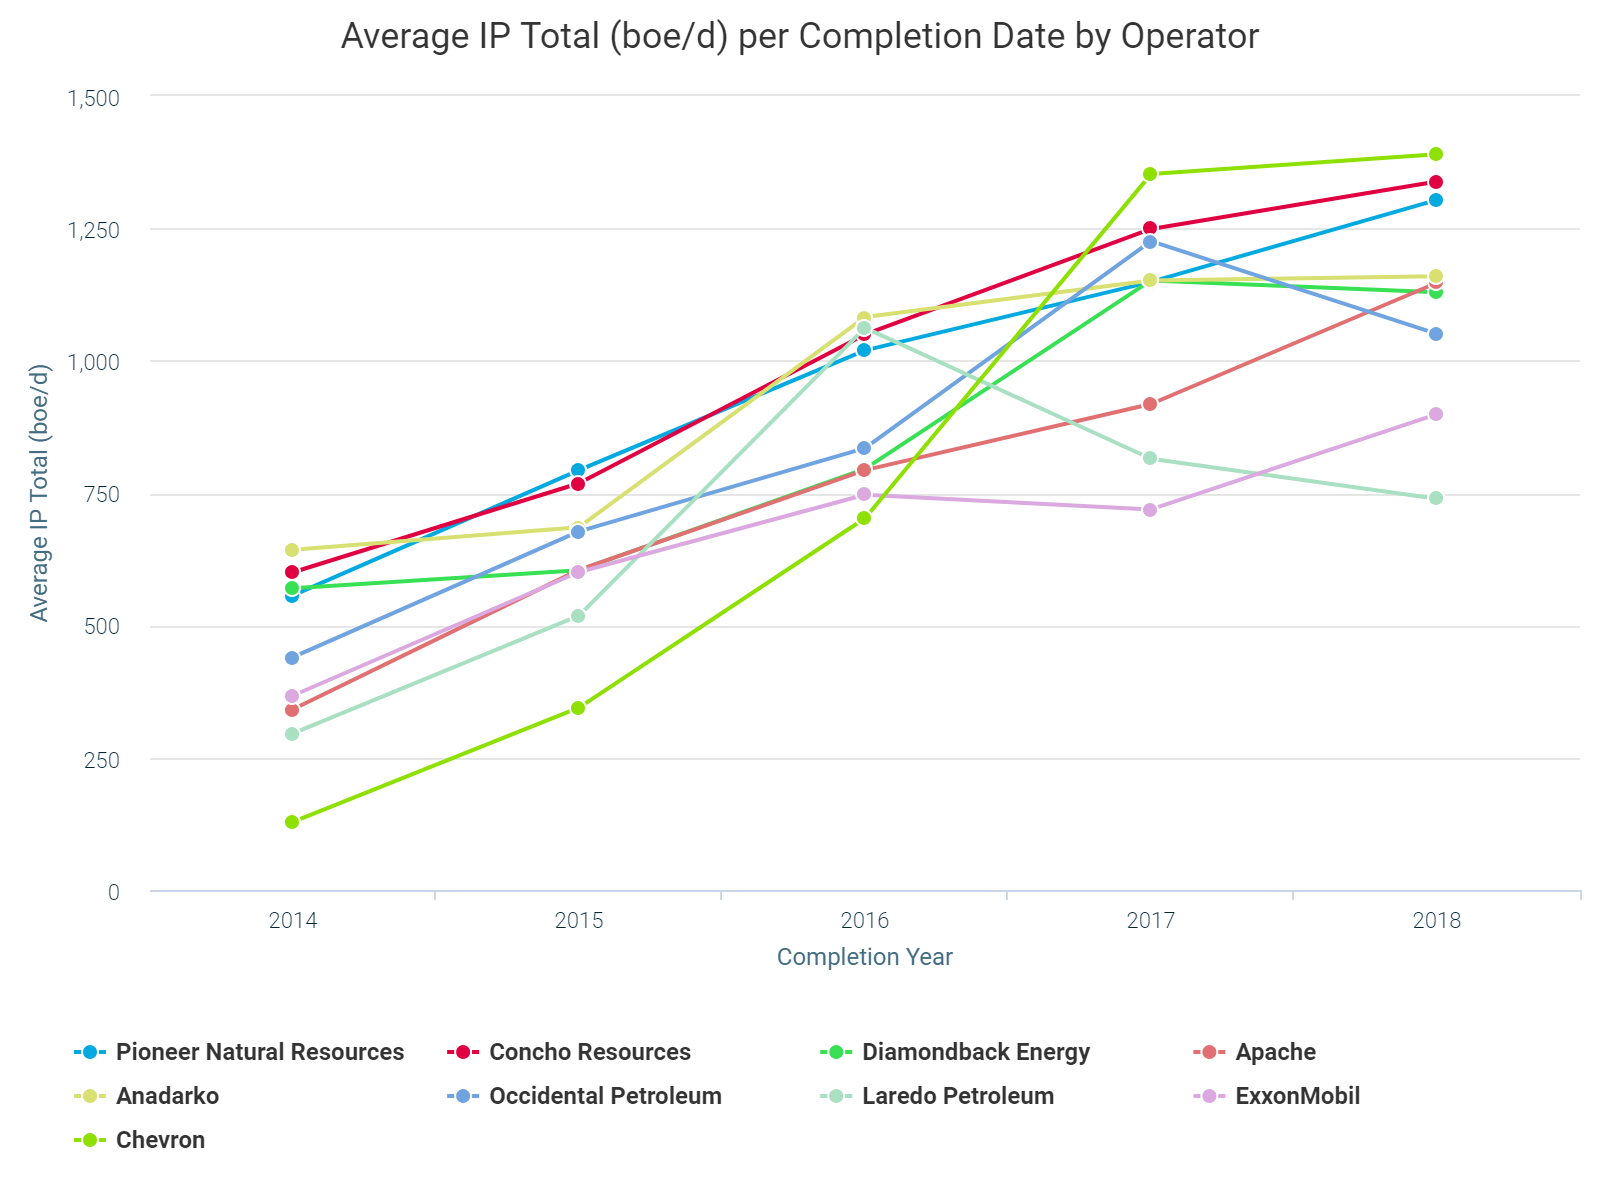 Average IP Total (boe/d) per Completion Date by Operator